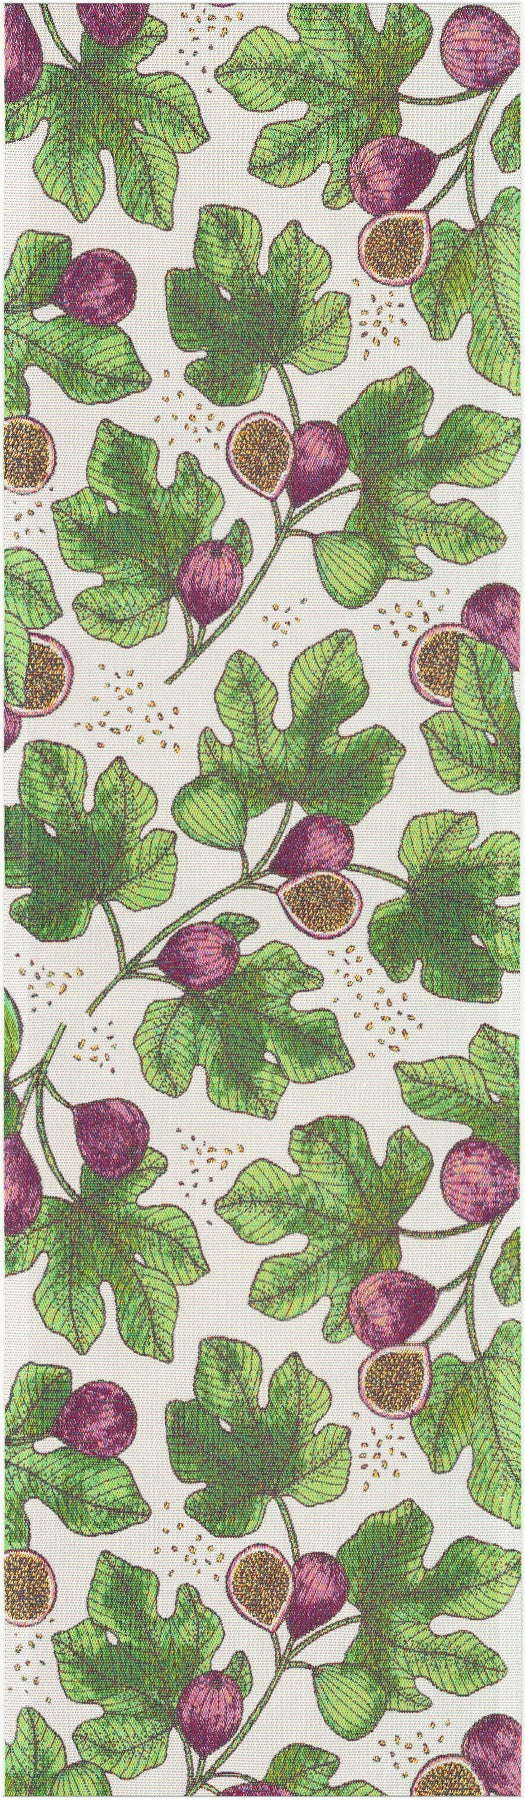 Ekelund Table Runner Fikon, Figs